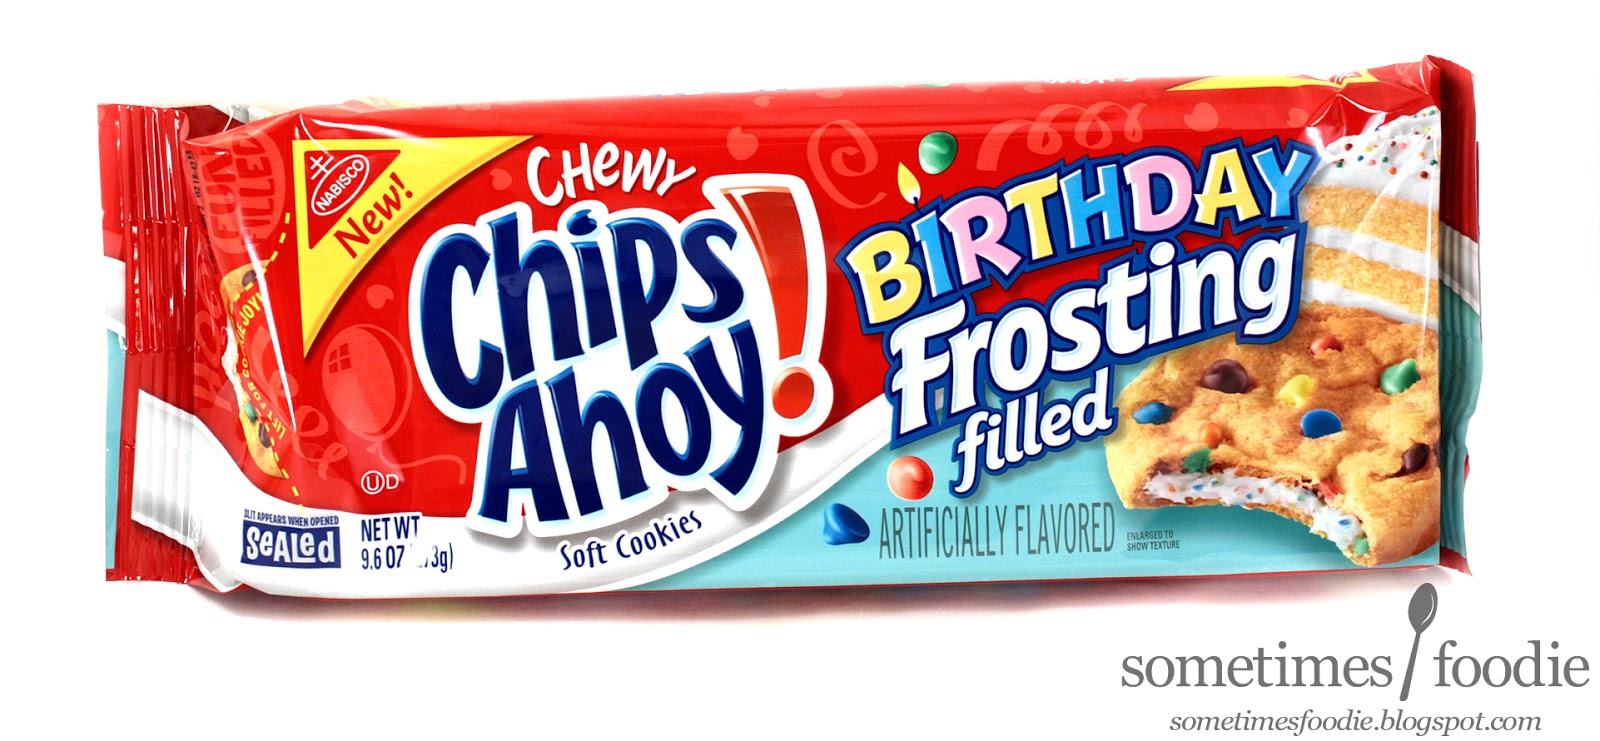 Sometimes Foodie Birthday Frosting Filled Chips Ahoy Wegmans